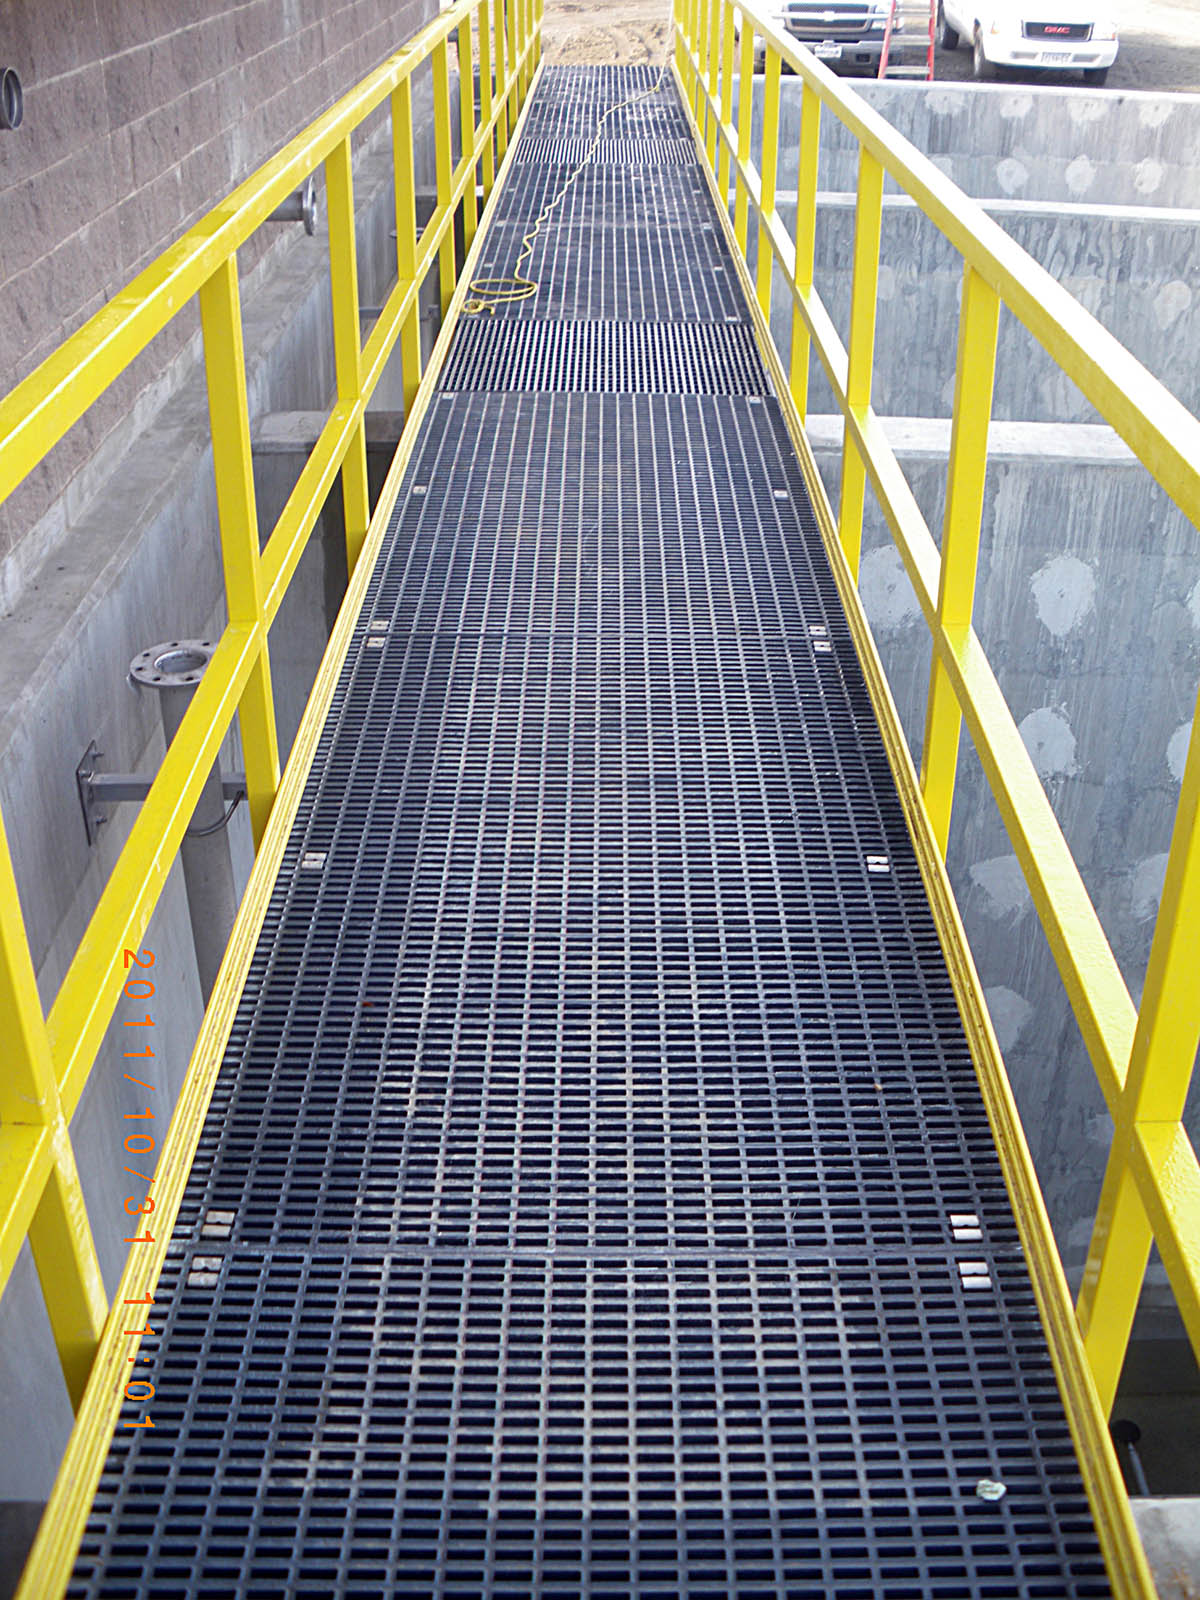 Dock Repair All Weather Frp Walkway Panel Grating